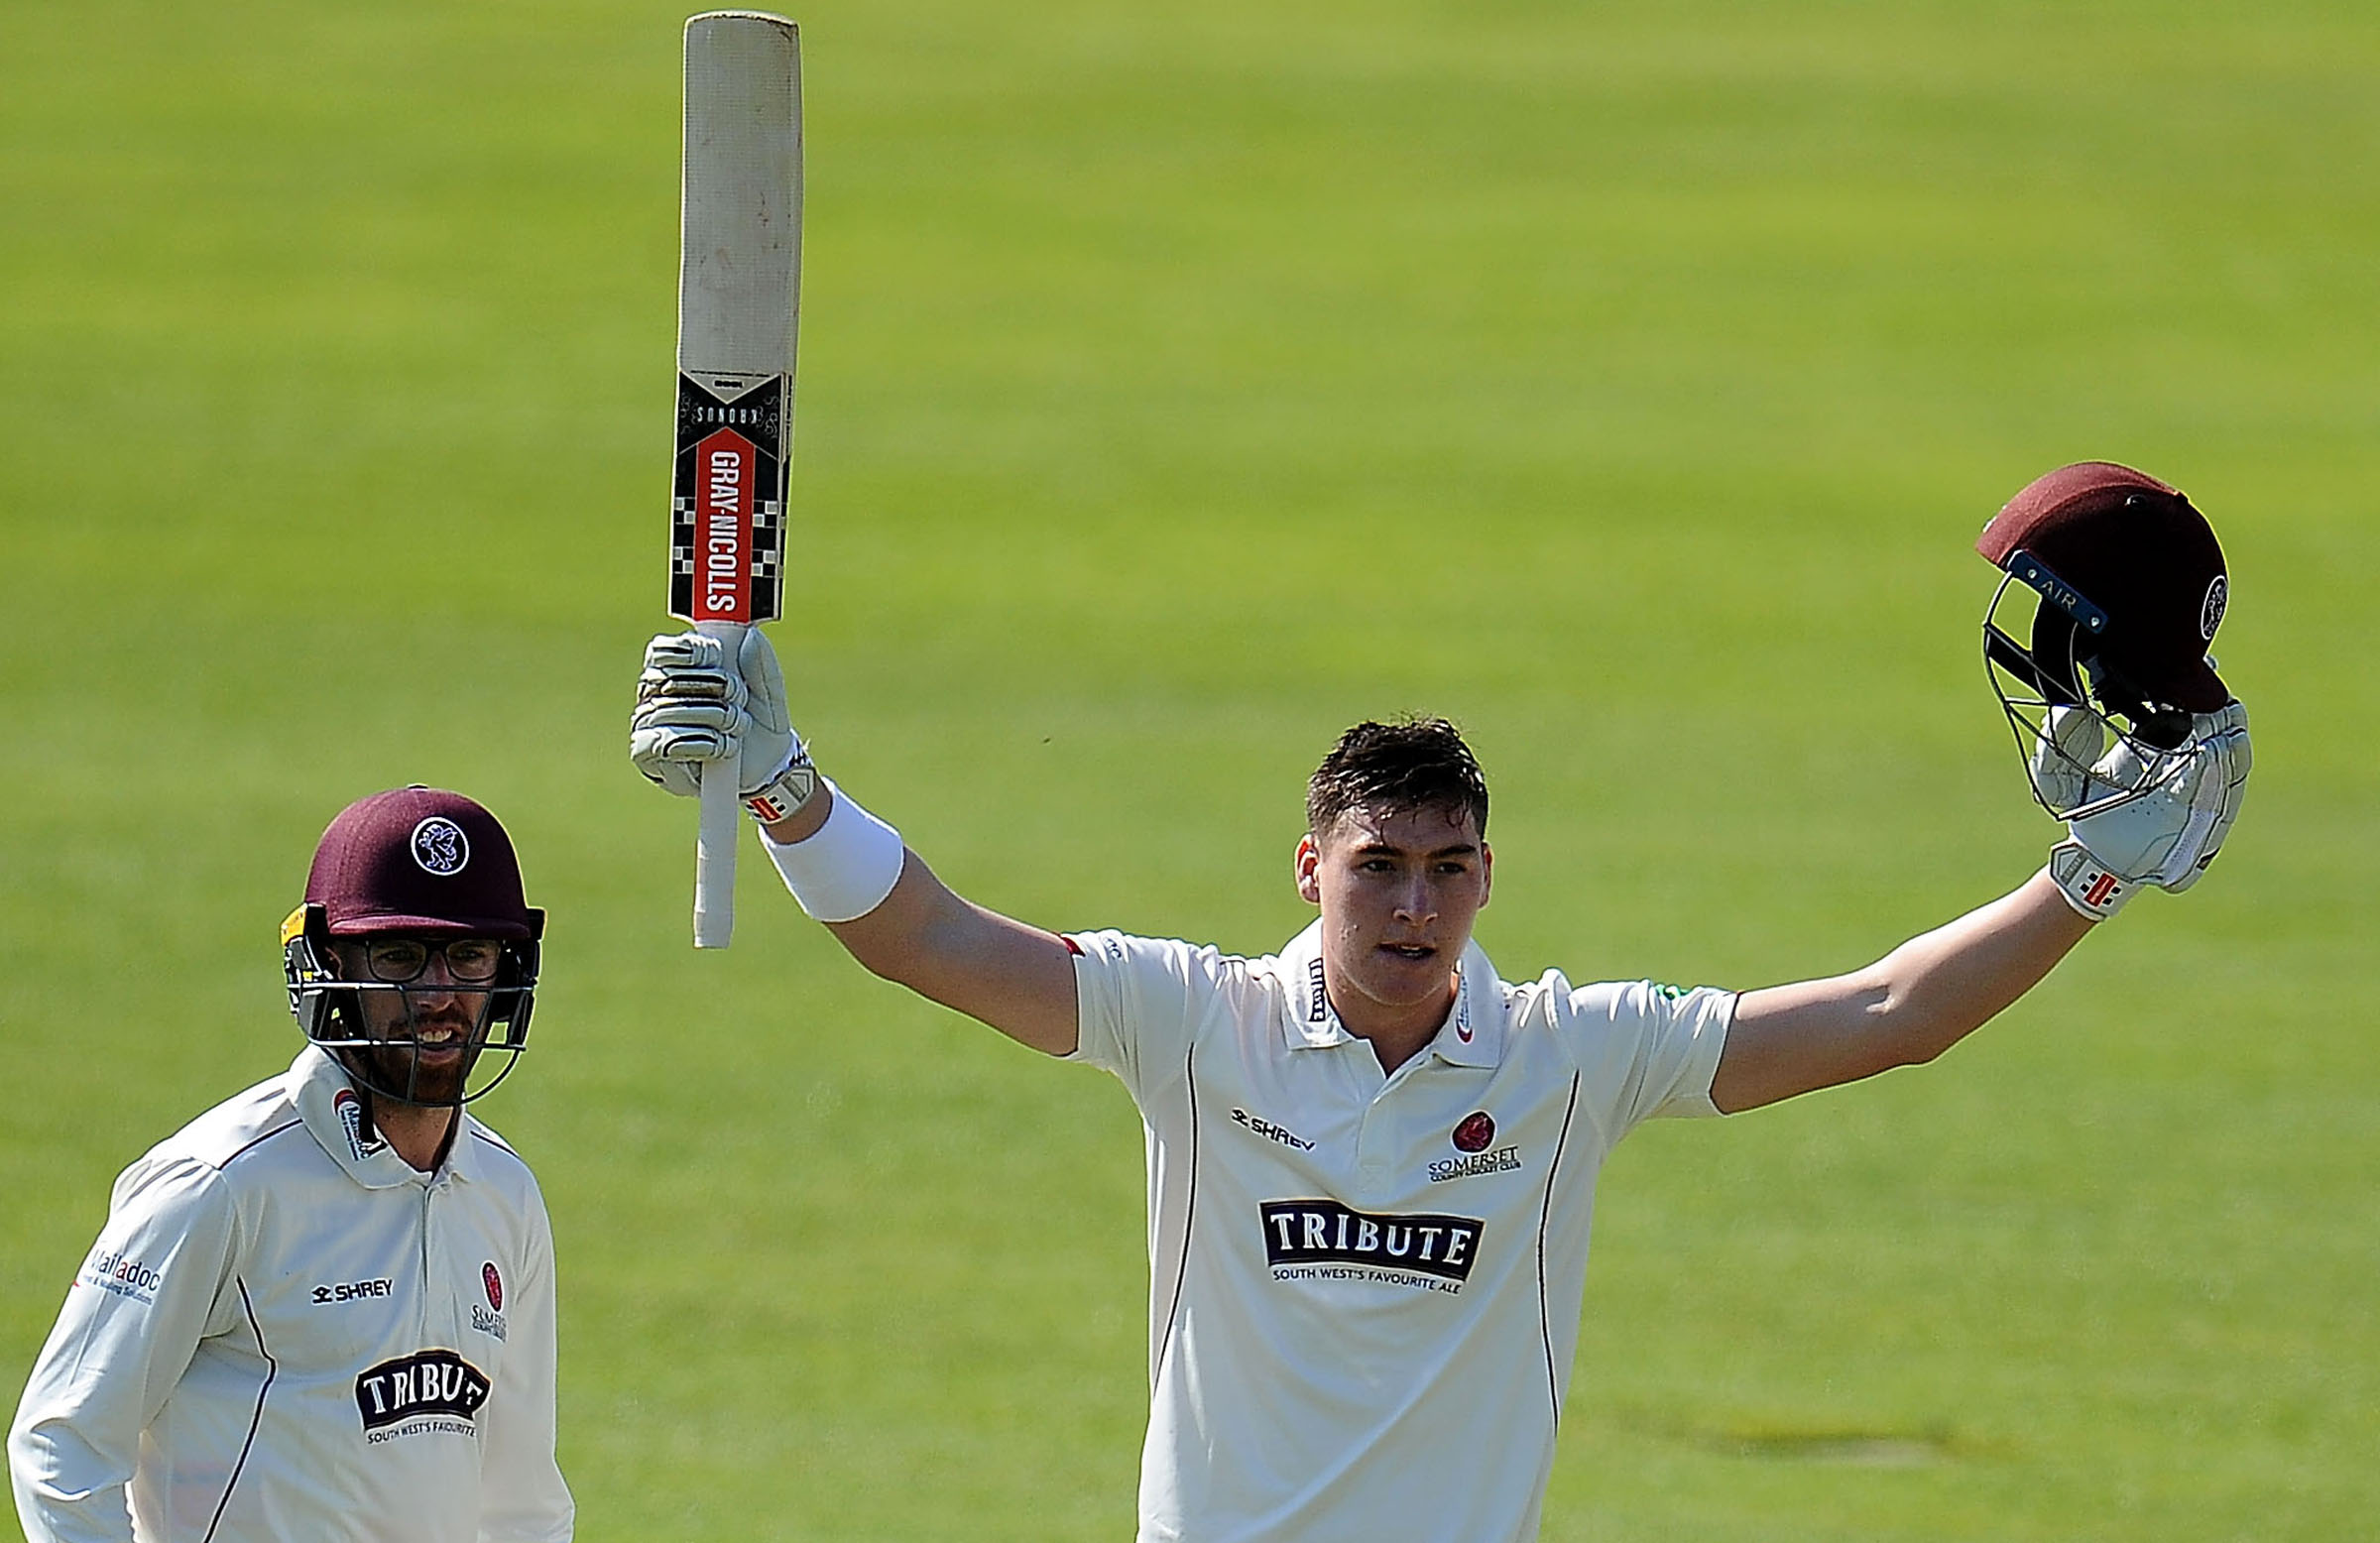 Renshaw scored hundreds in his first two county matches // Getty